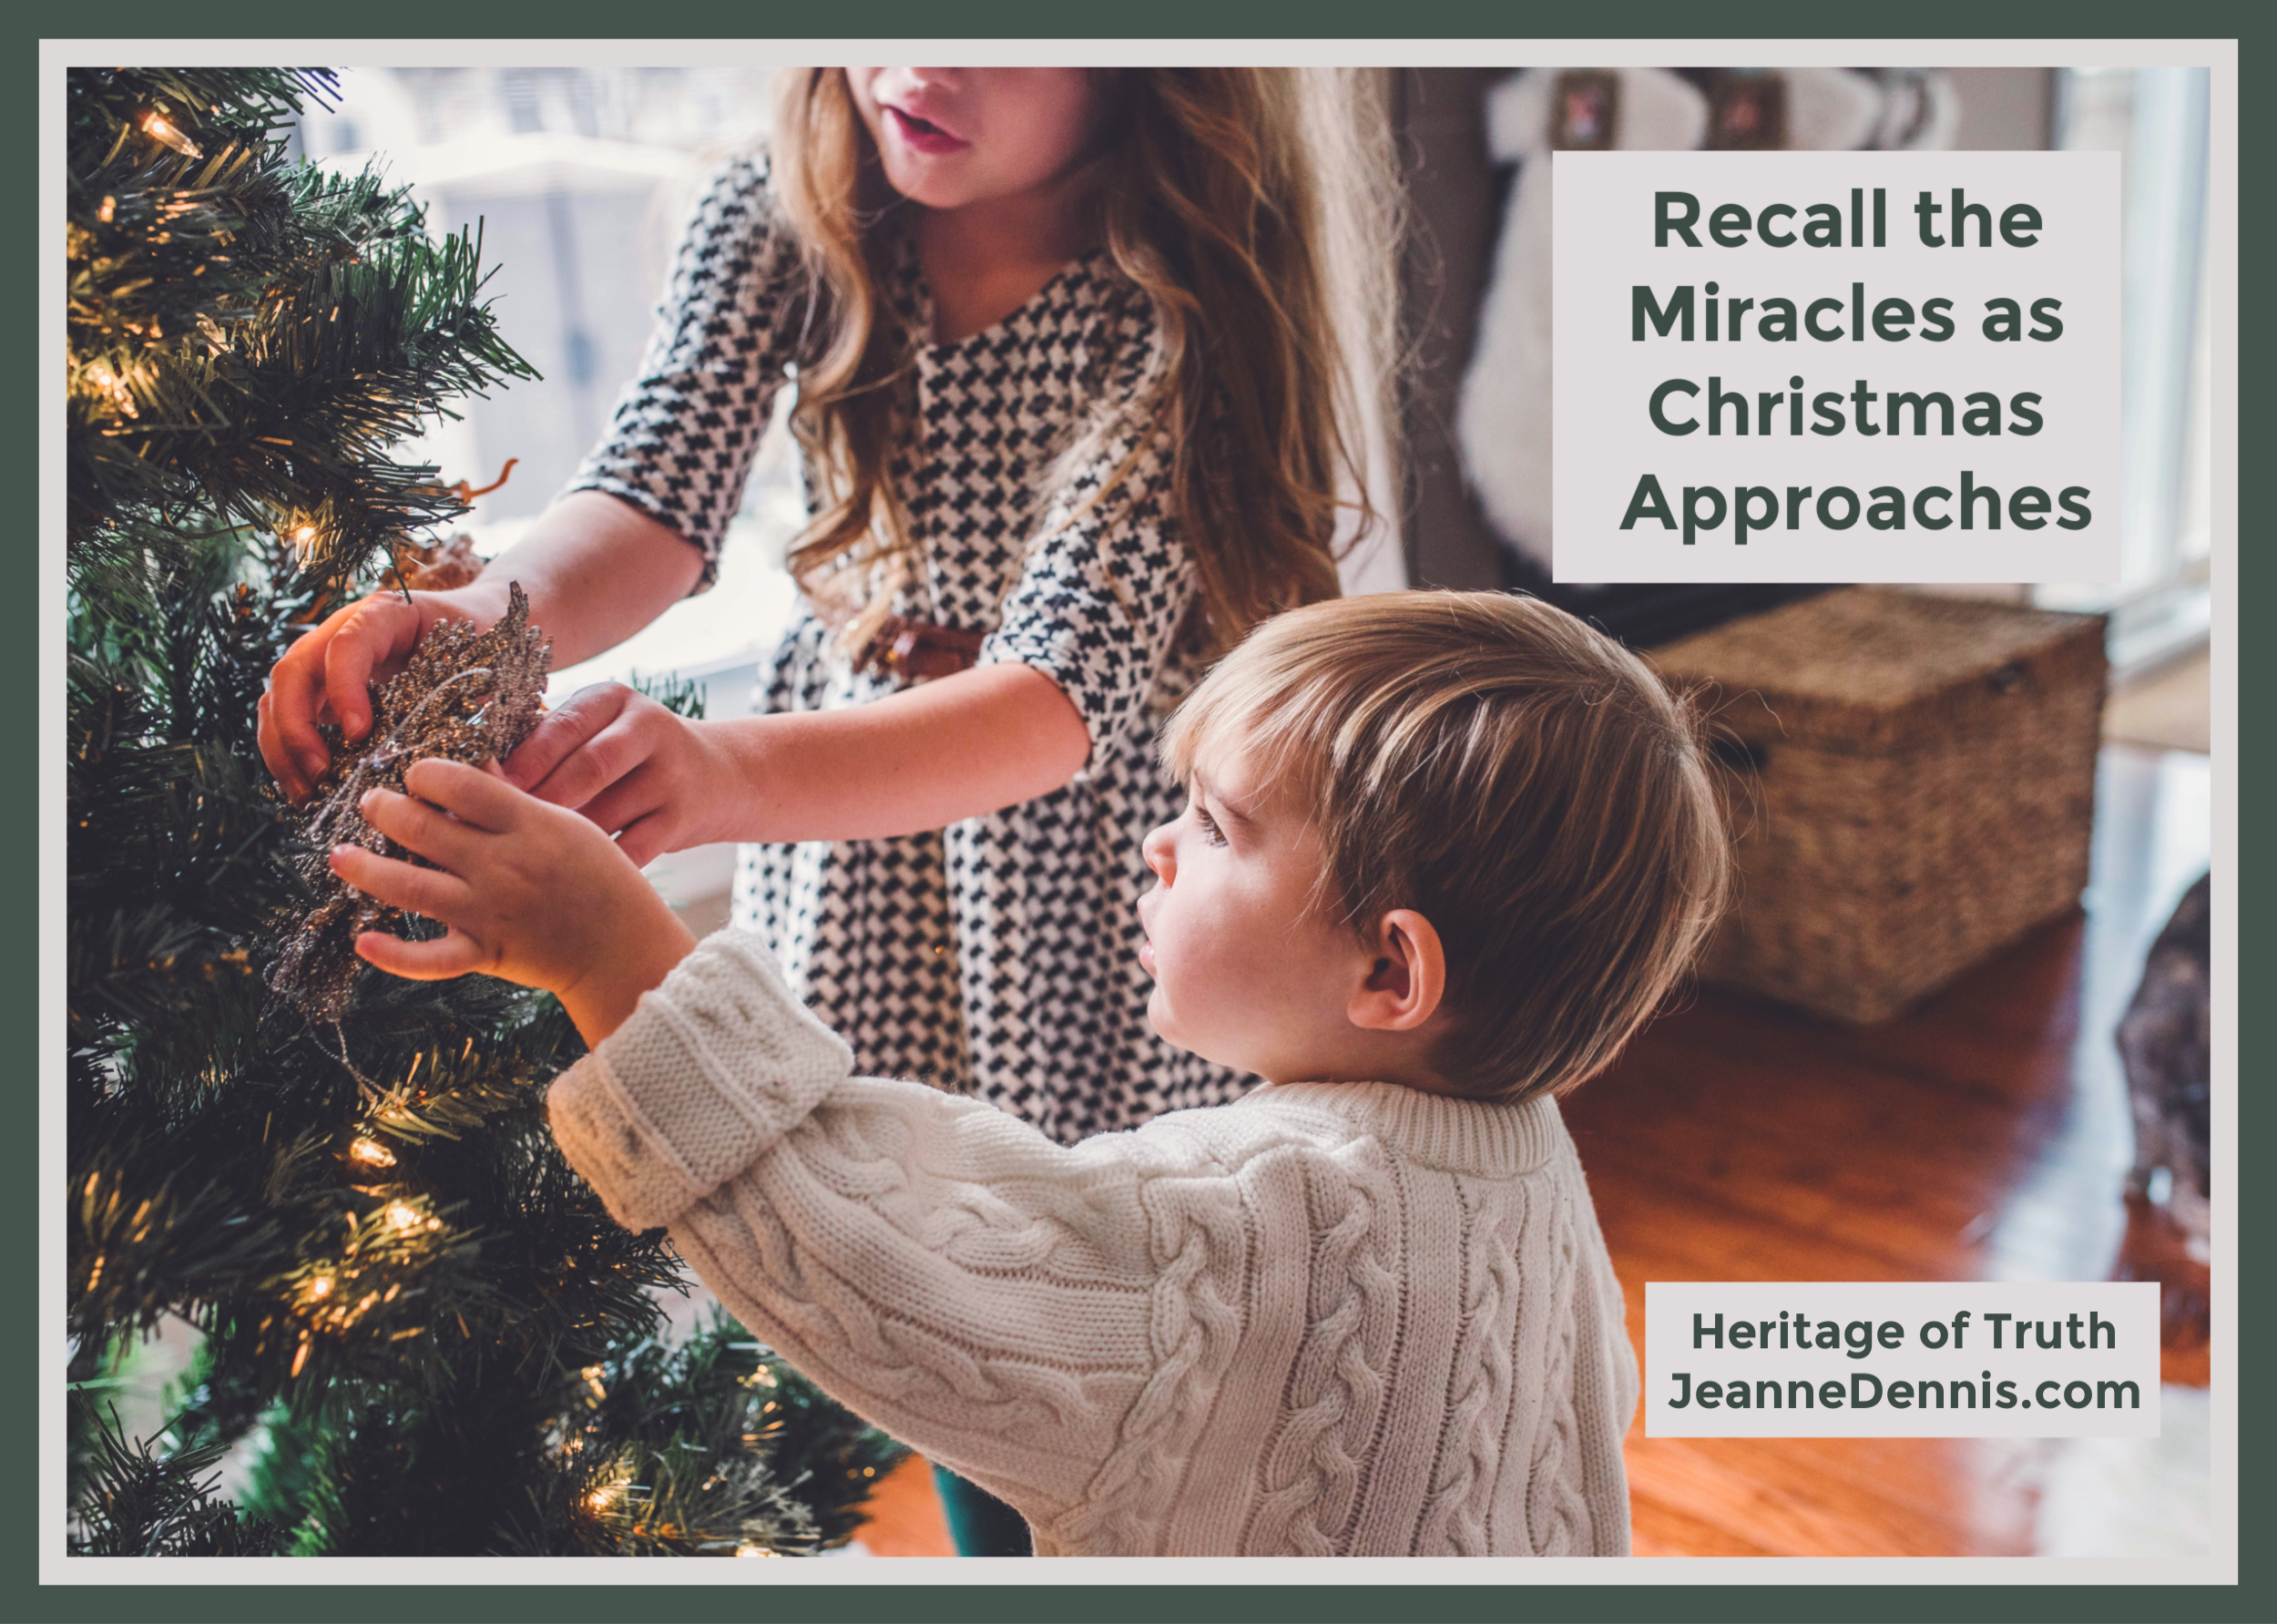 Recall the Miracles as Christmas Approaches, JeanneDennis.com